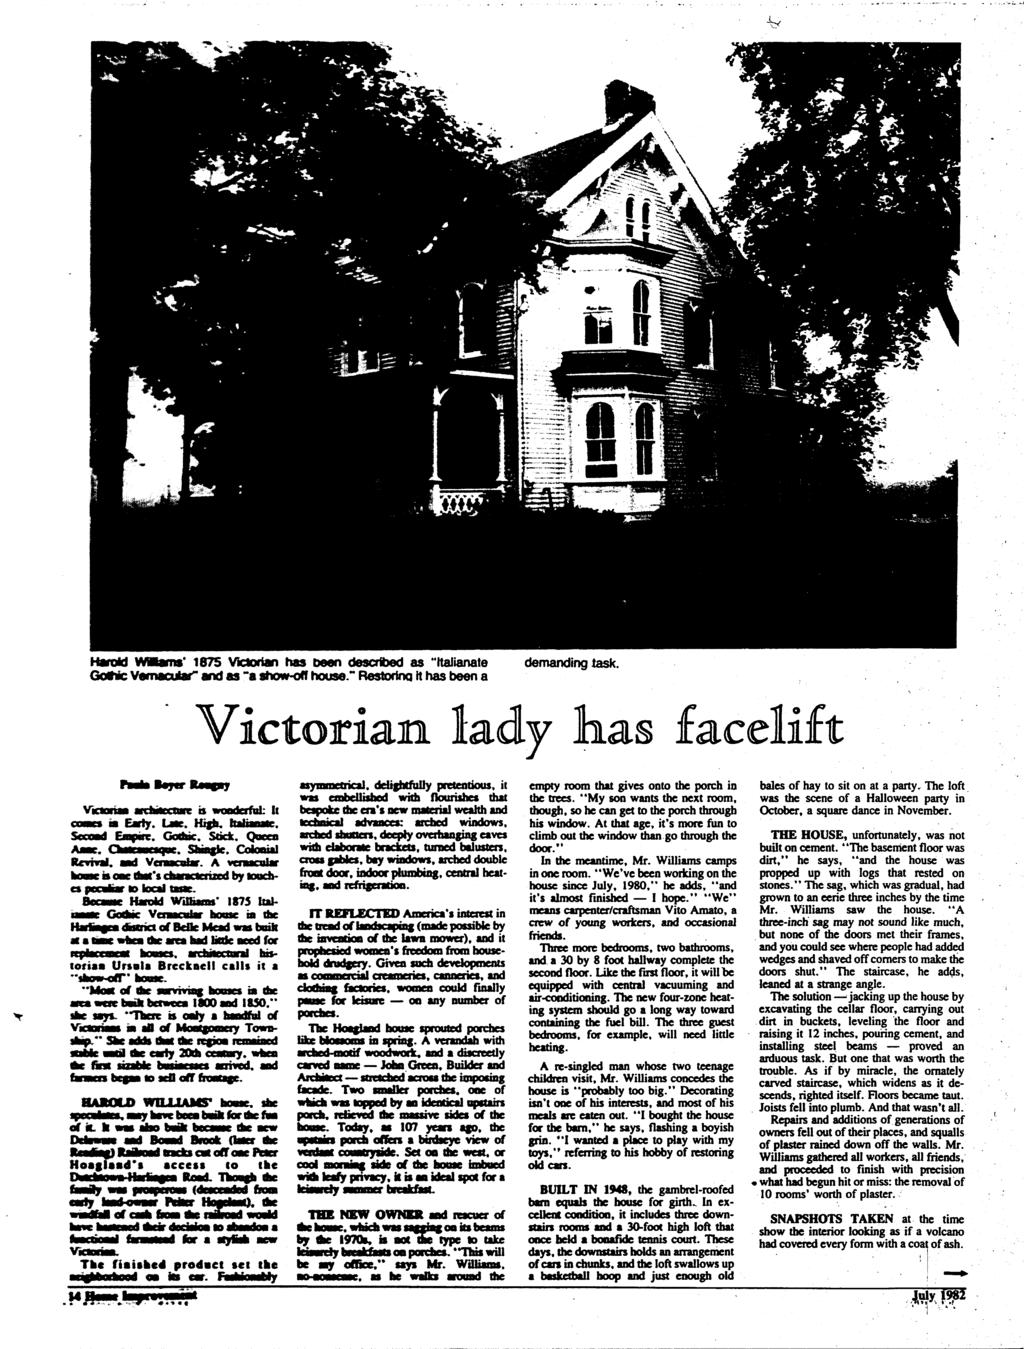 "1875 Victorian has been described as ""ItaJianate Gottic Vernacular and as ""a show-off house."" Restoring it has been a demanding task. Victorian lady has Enpac. Gothic. Slick."